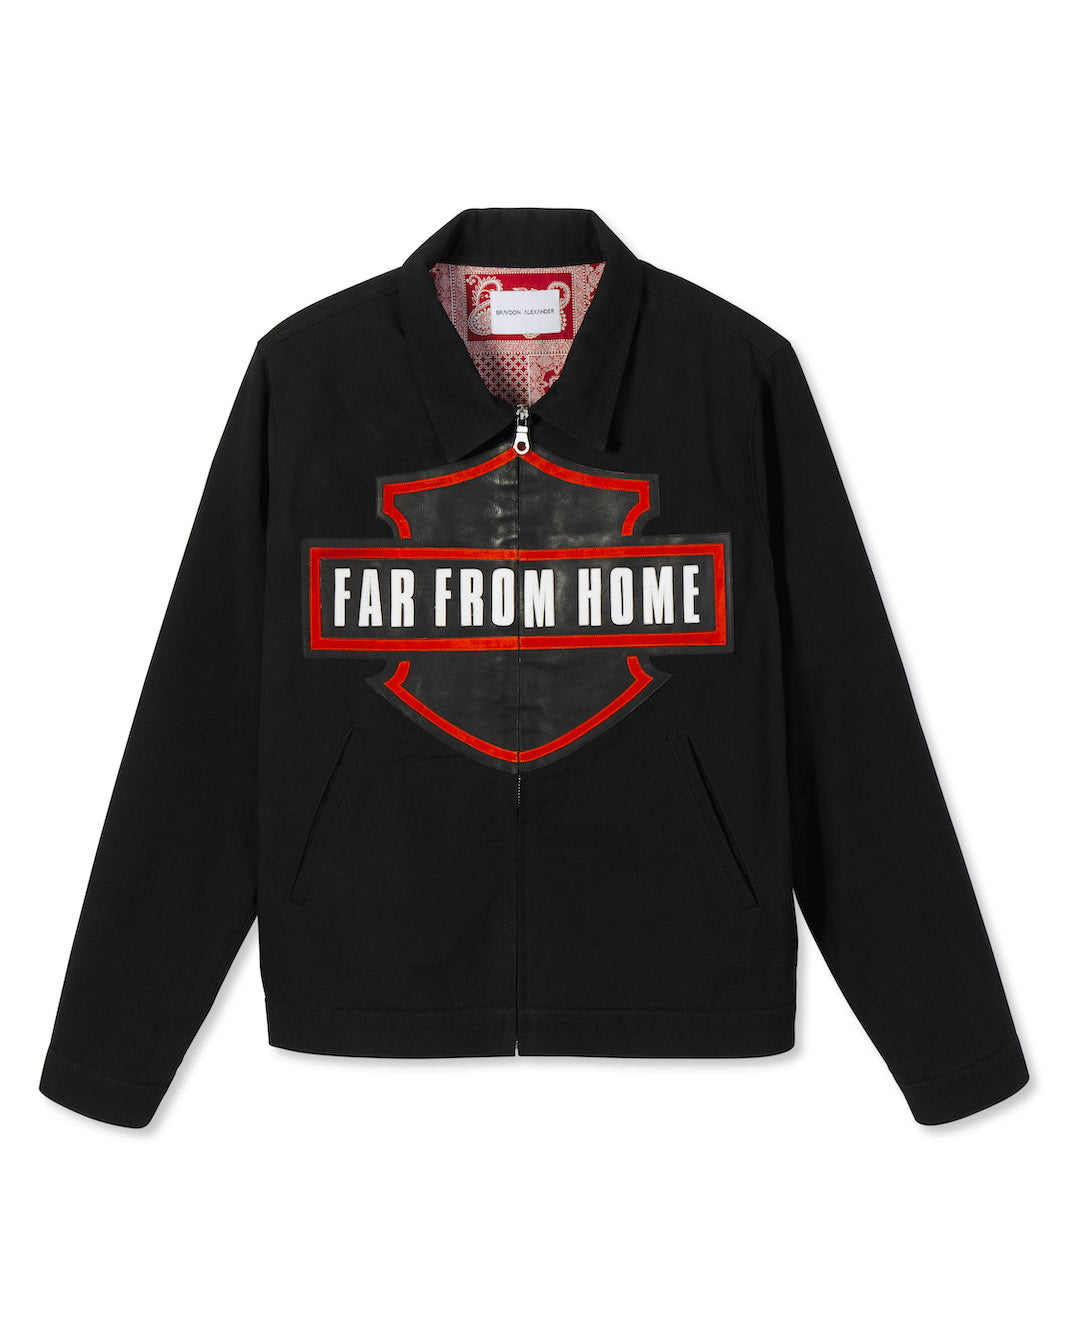 'FAR FROM HOME' TWILL JACKET